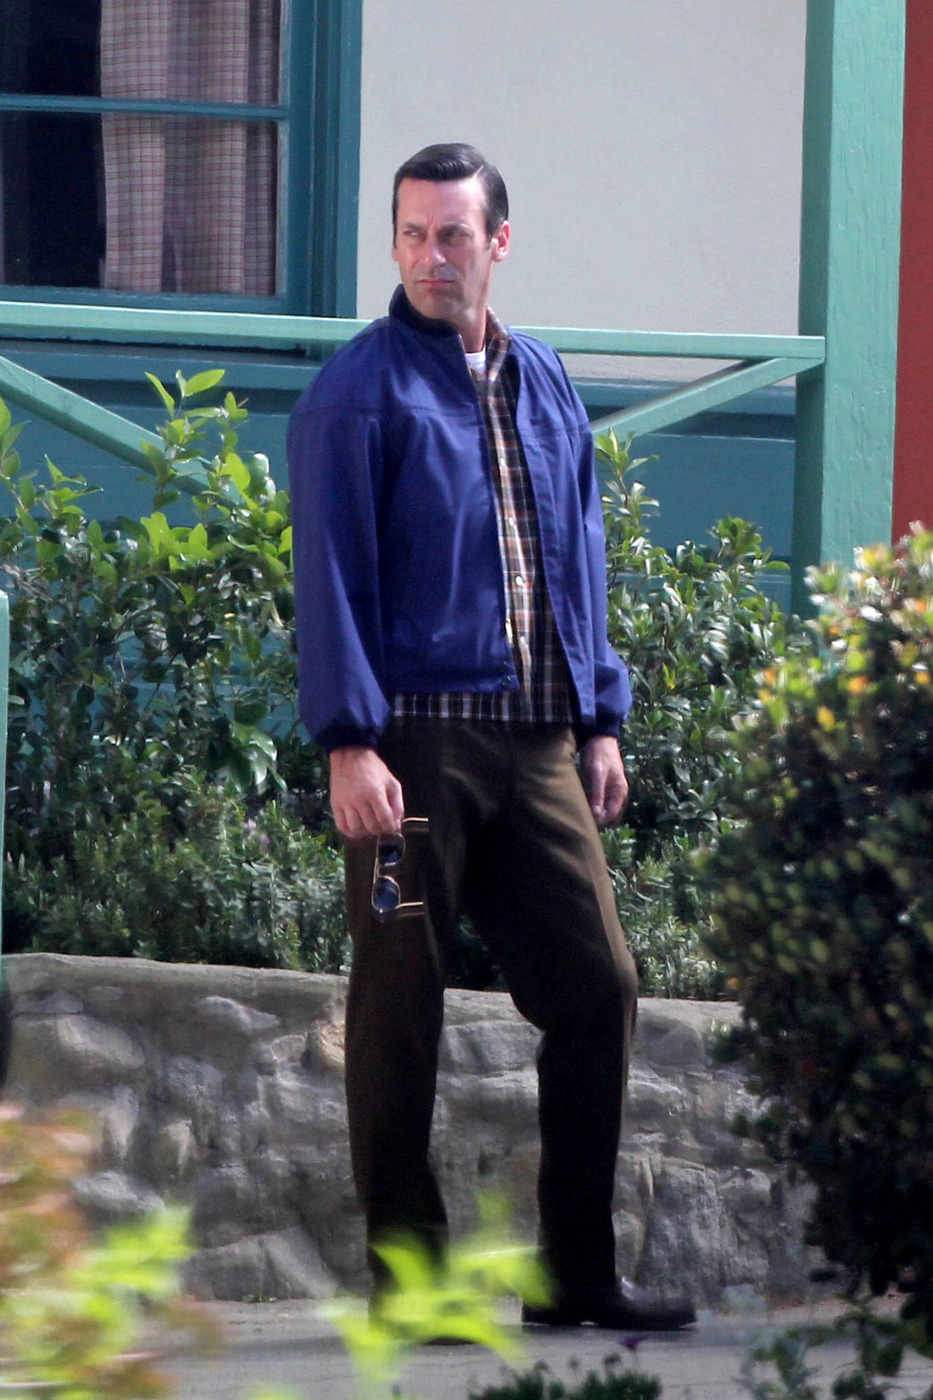 Jon Hamm films a scene for 'Mad Men' in LA. The actor could be seen getting out of a classic car wearing a blue jacket with his hair slicked back. Los Angeles, California - Monday June 16, 2014.